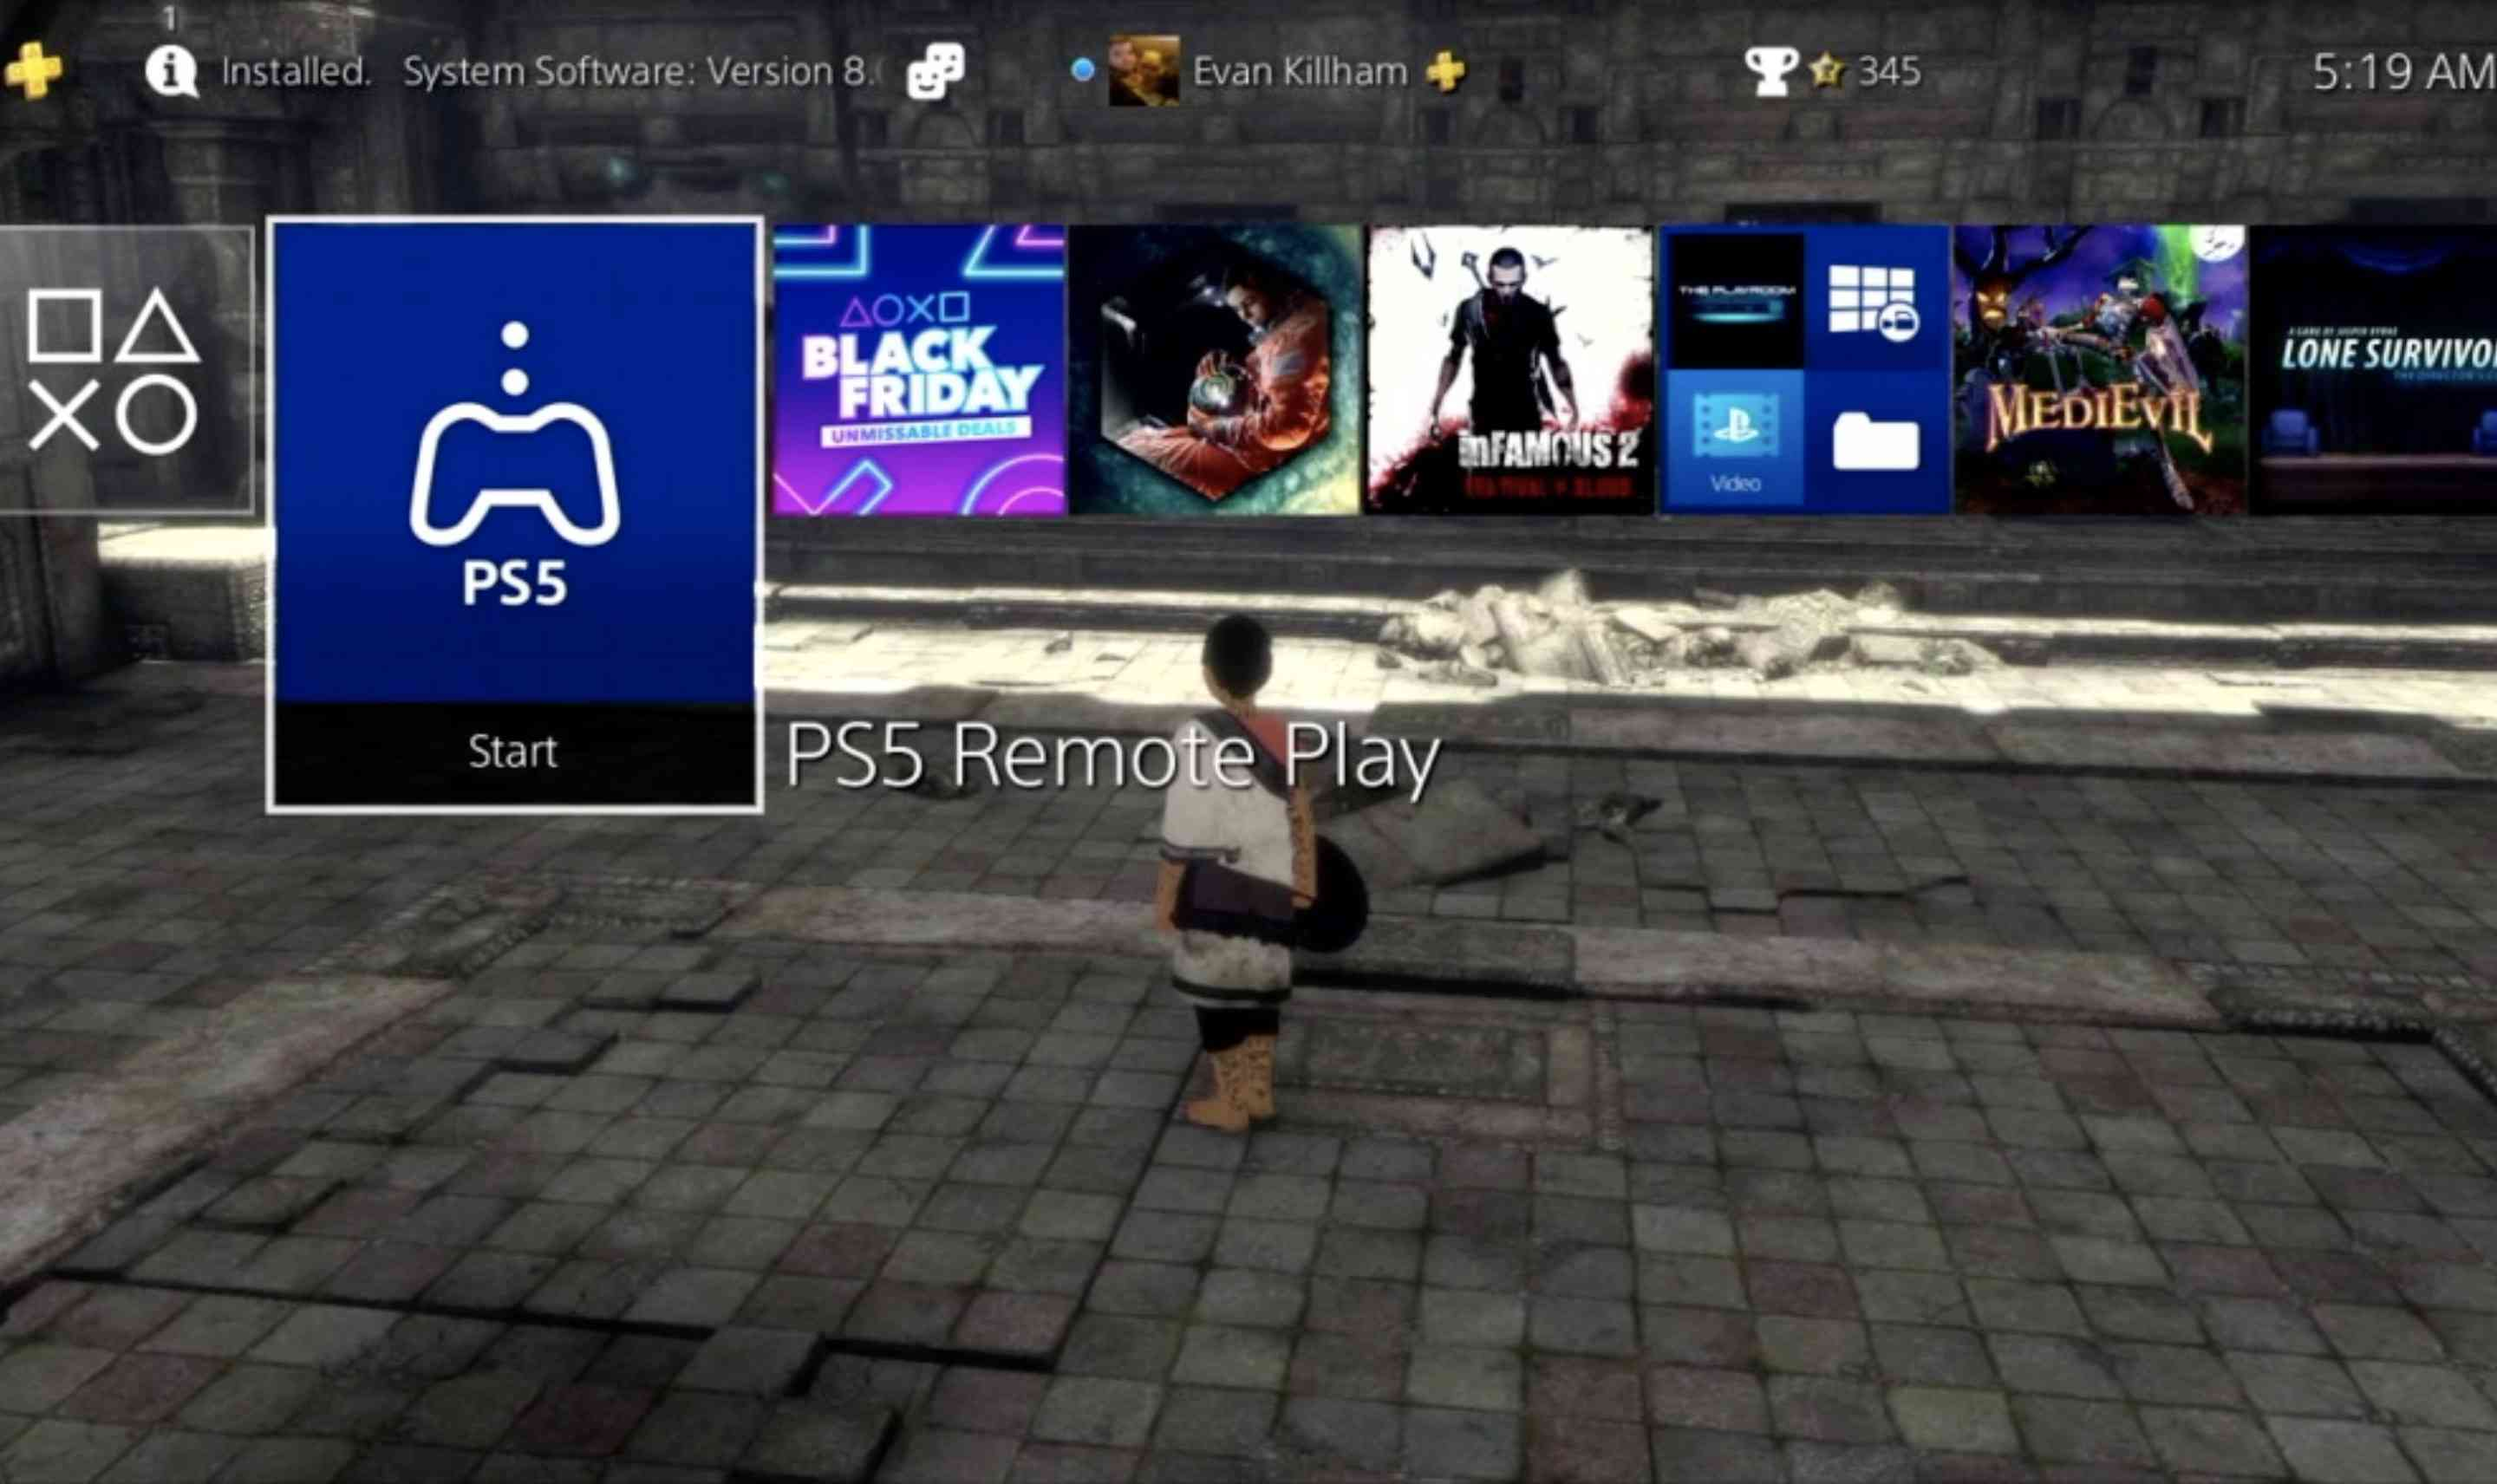 The PS5 Remote Play app on PS4